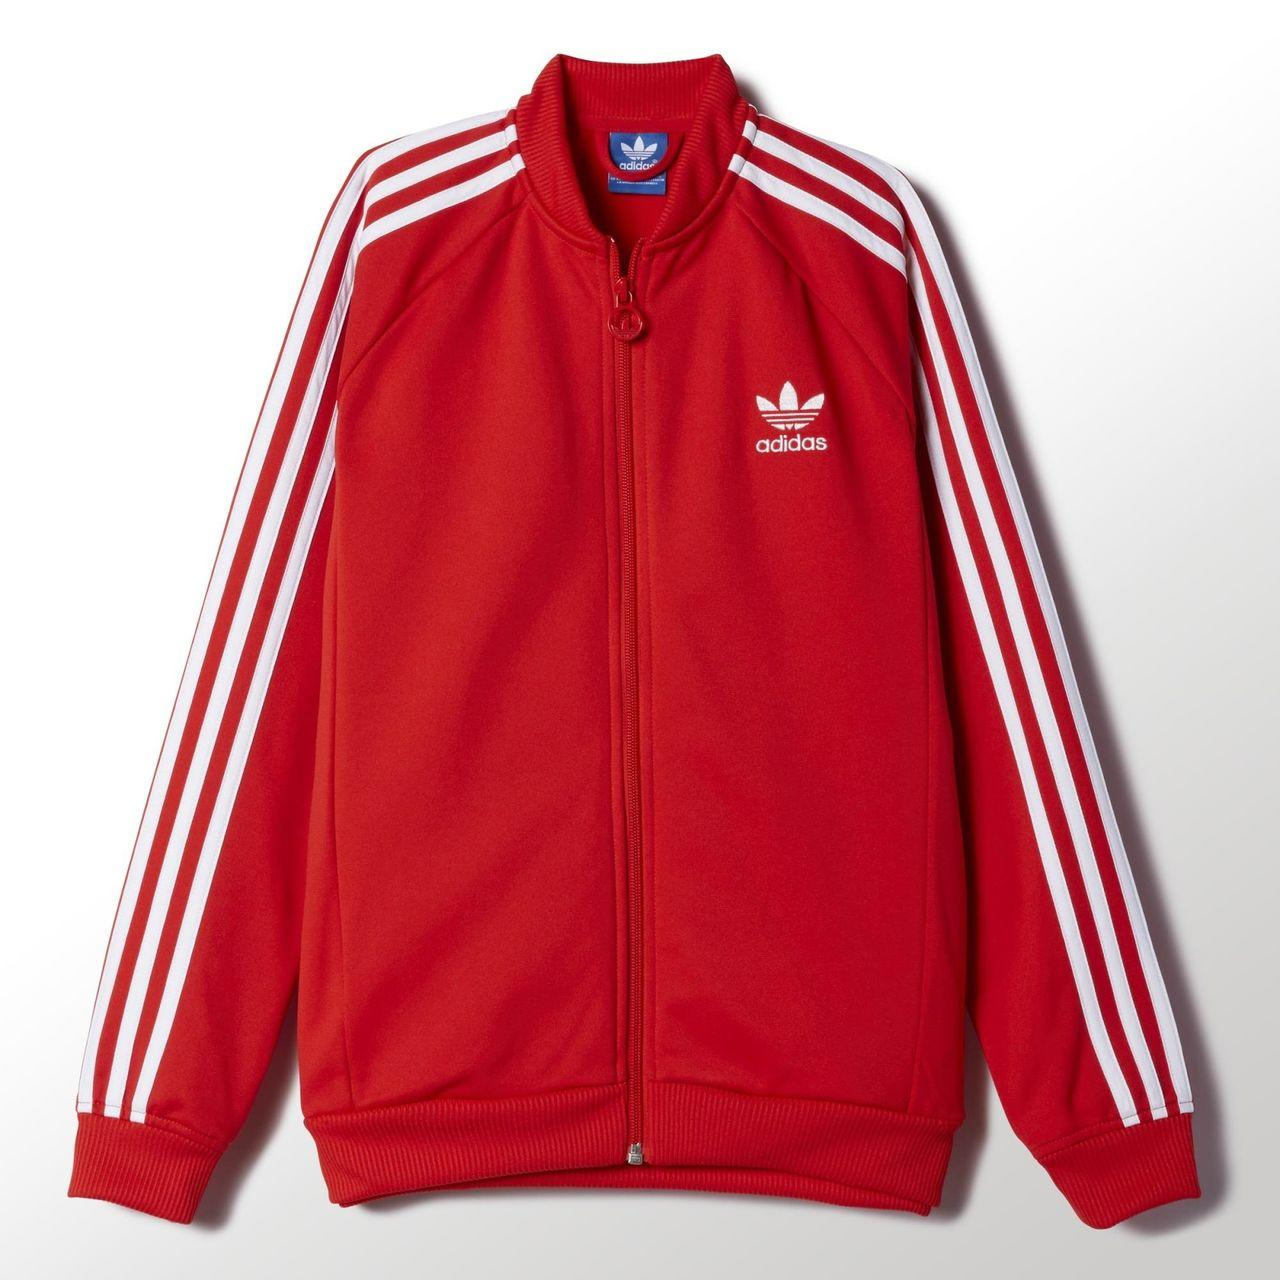 adidas superstar track jacket red from adidas. Black Bedroom Furniture Sets. Home Design Ideas